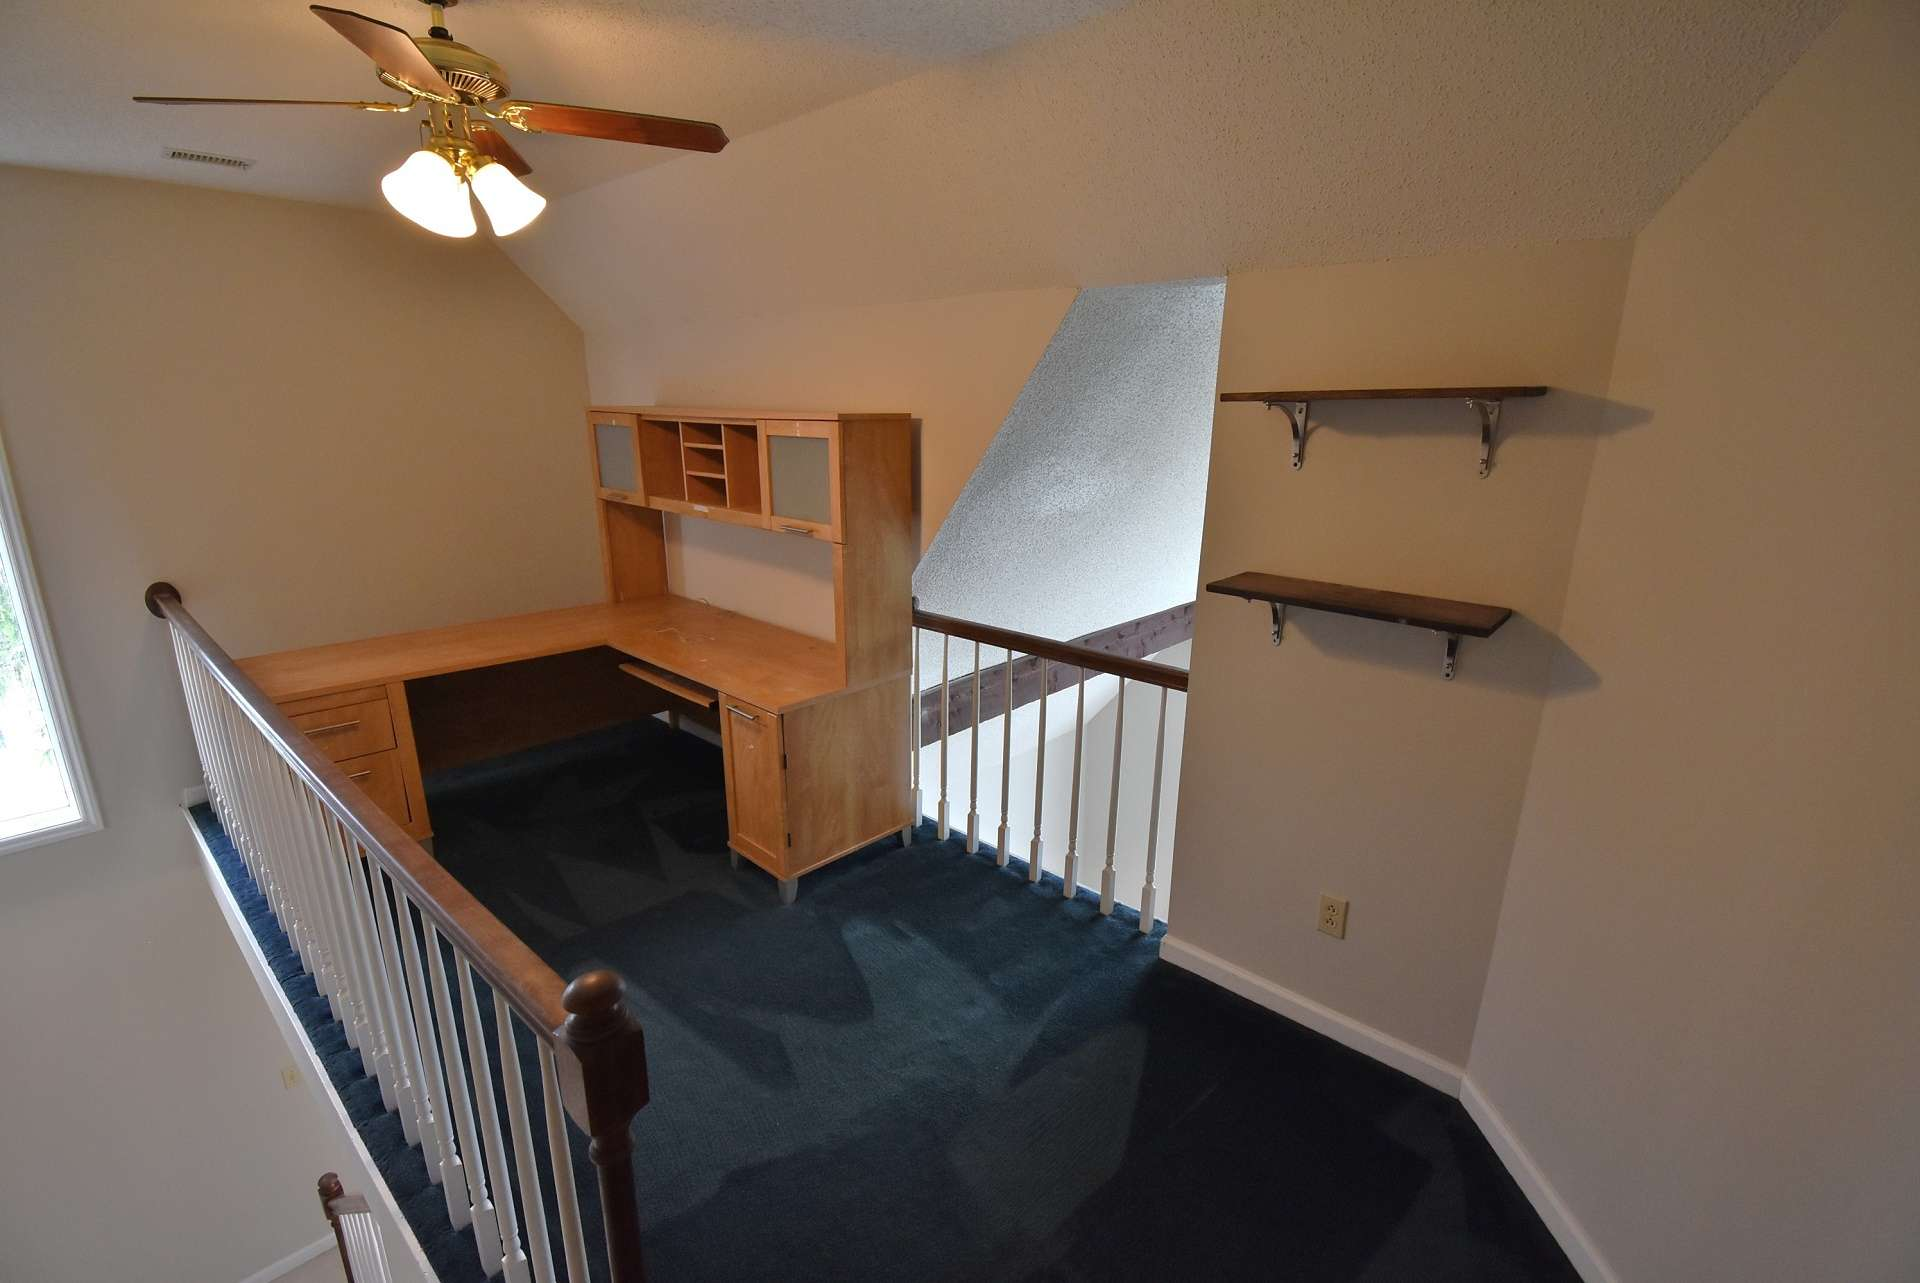 The upper level offers this loft area overlooking the living room.  This would be a great space to utilize as an office area or library.